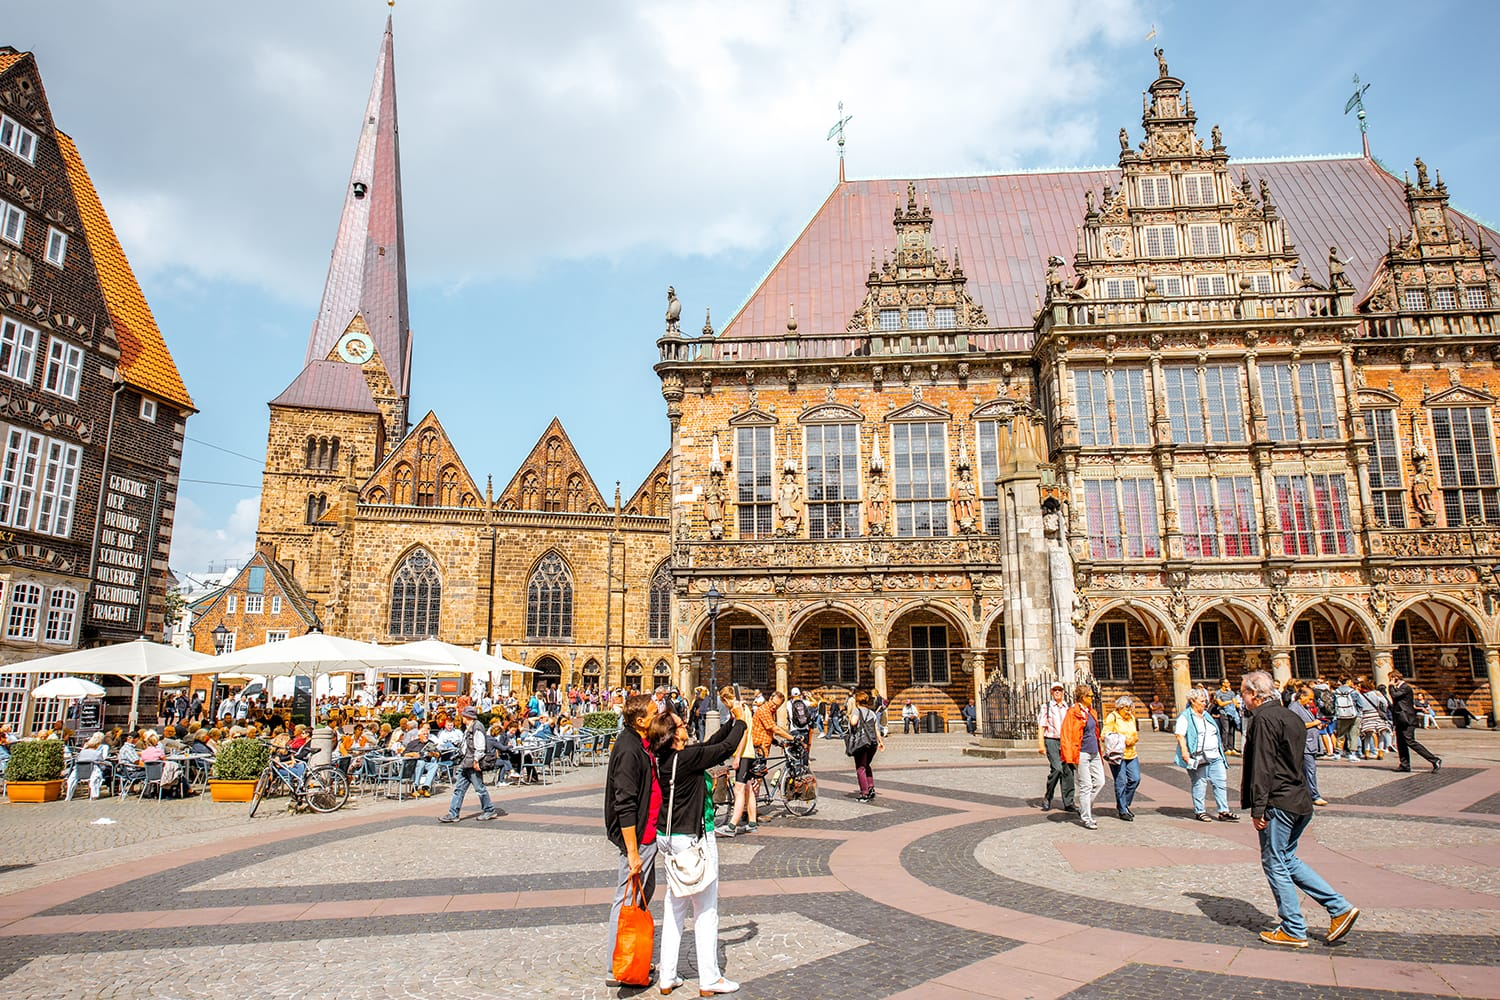 View on the Market square full of tourists with beautiful city hall building during the sunny weather in Bremen, Germany